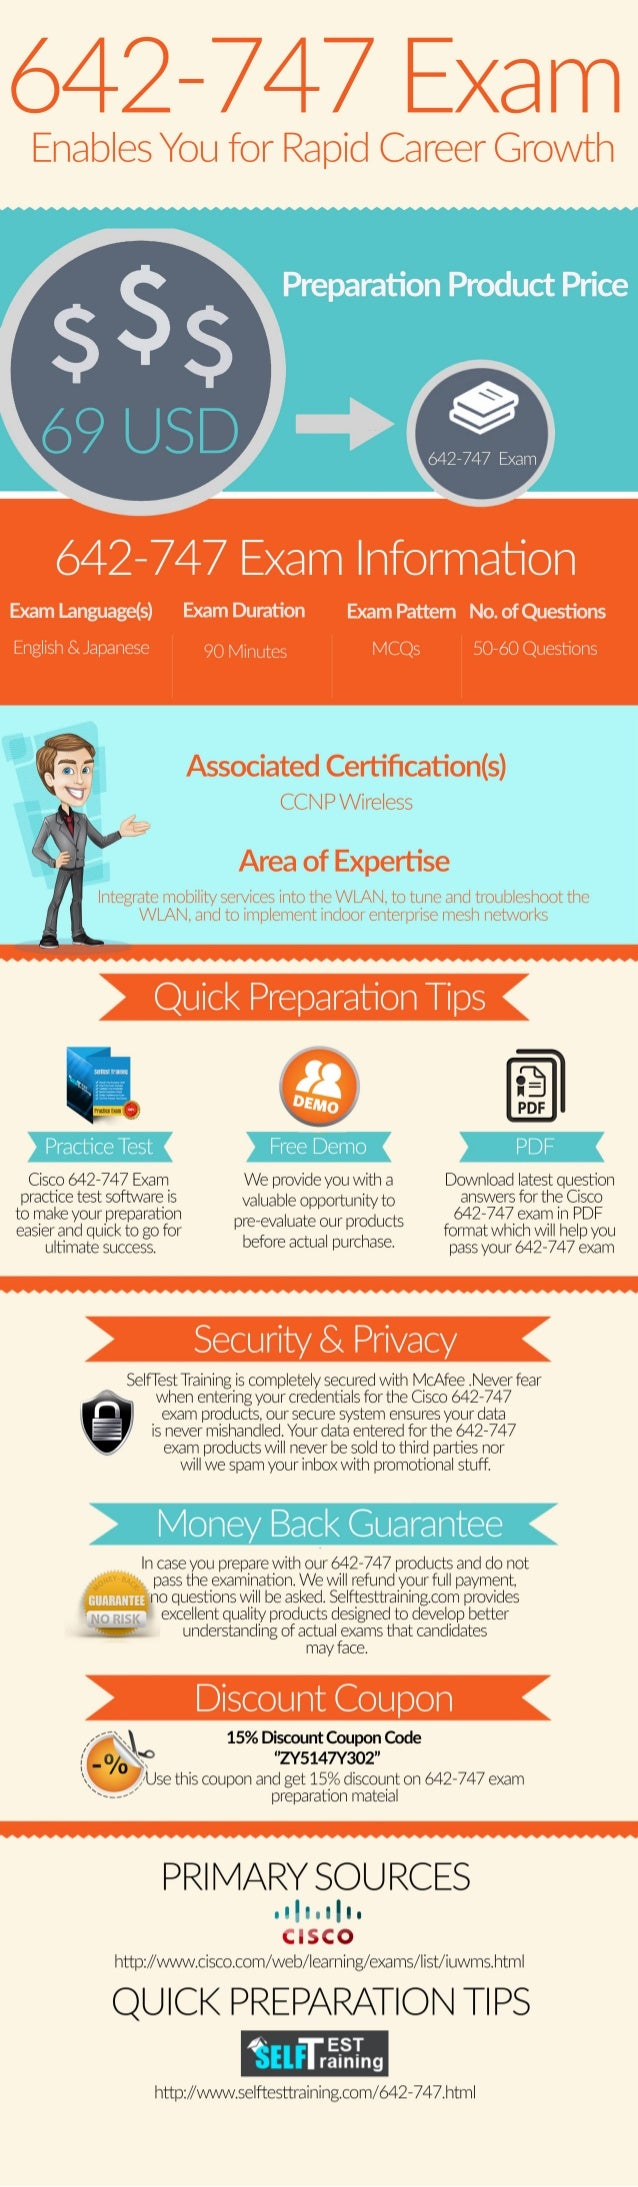 Get 642-747 exam real questions & practice test [Infographic]